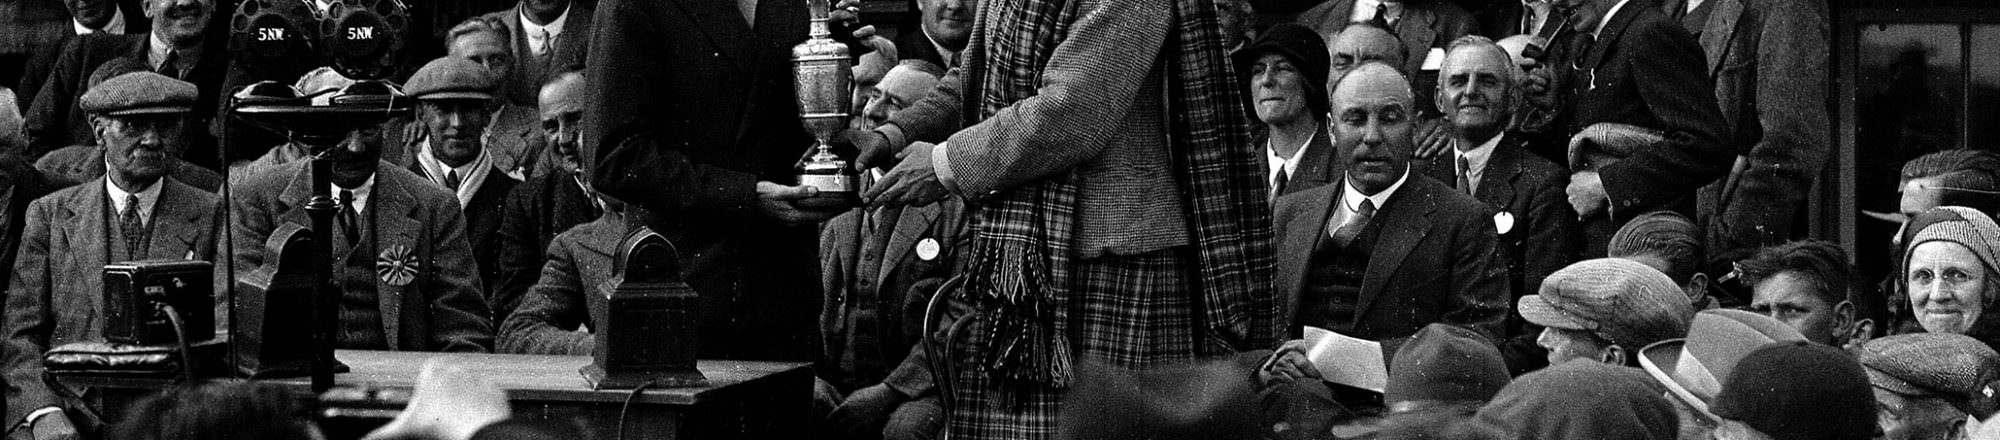 The year that the Open Championship first came to Carnoustie